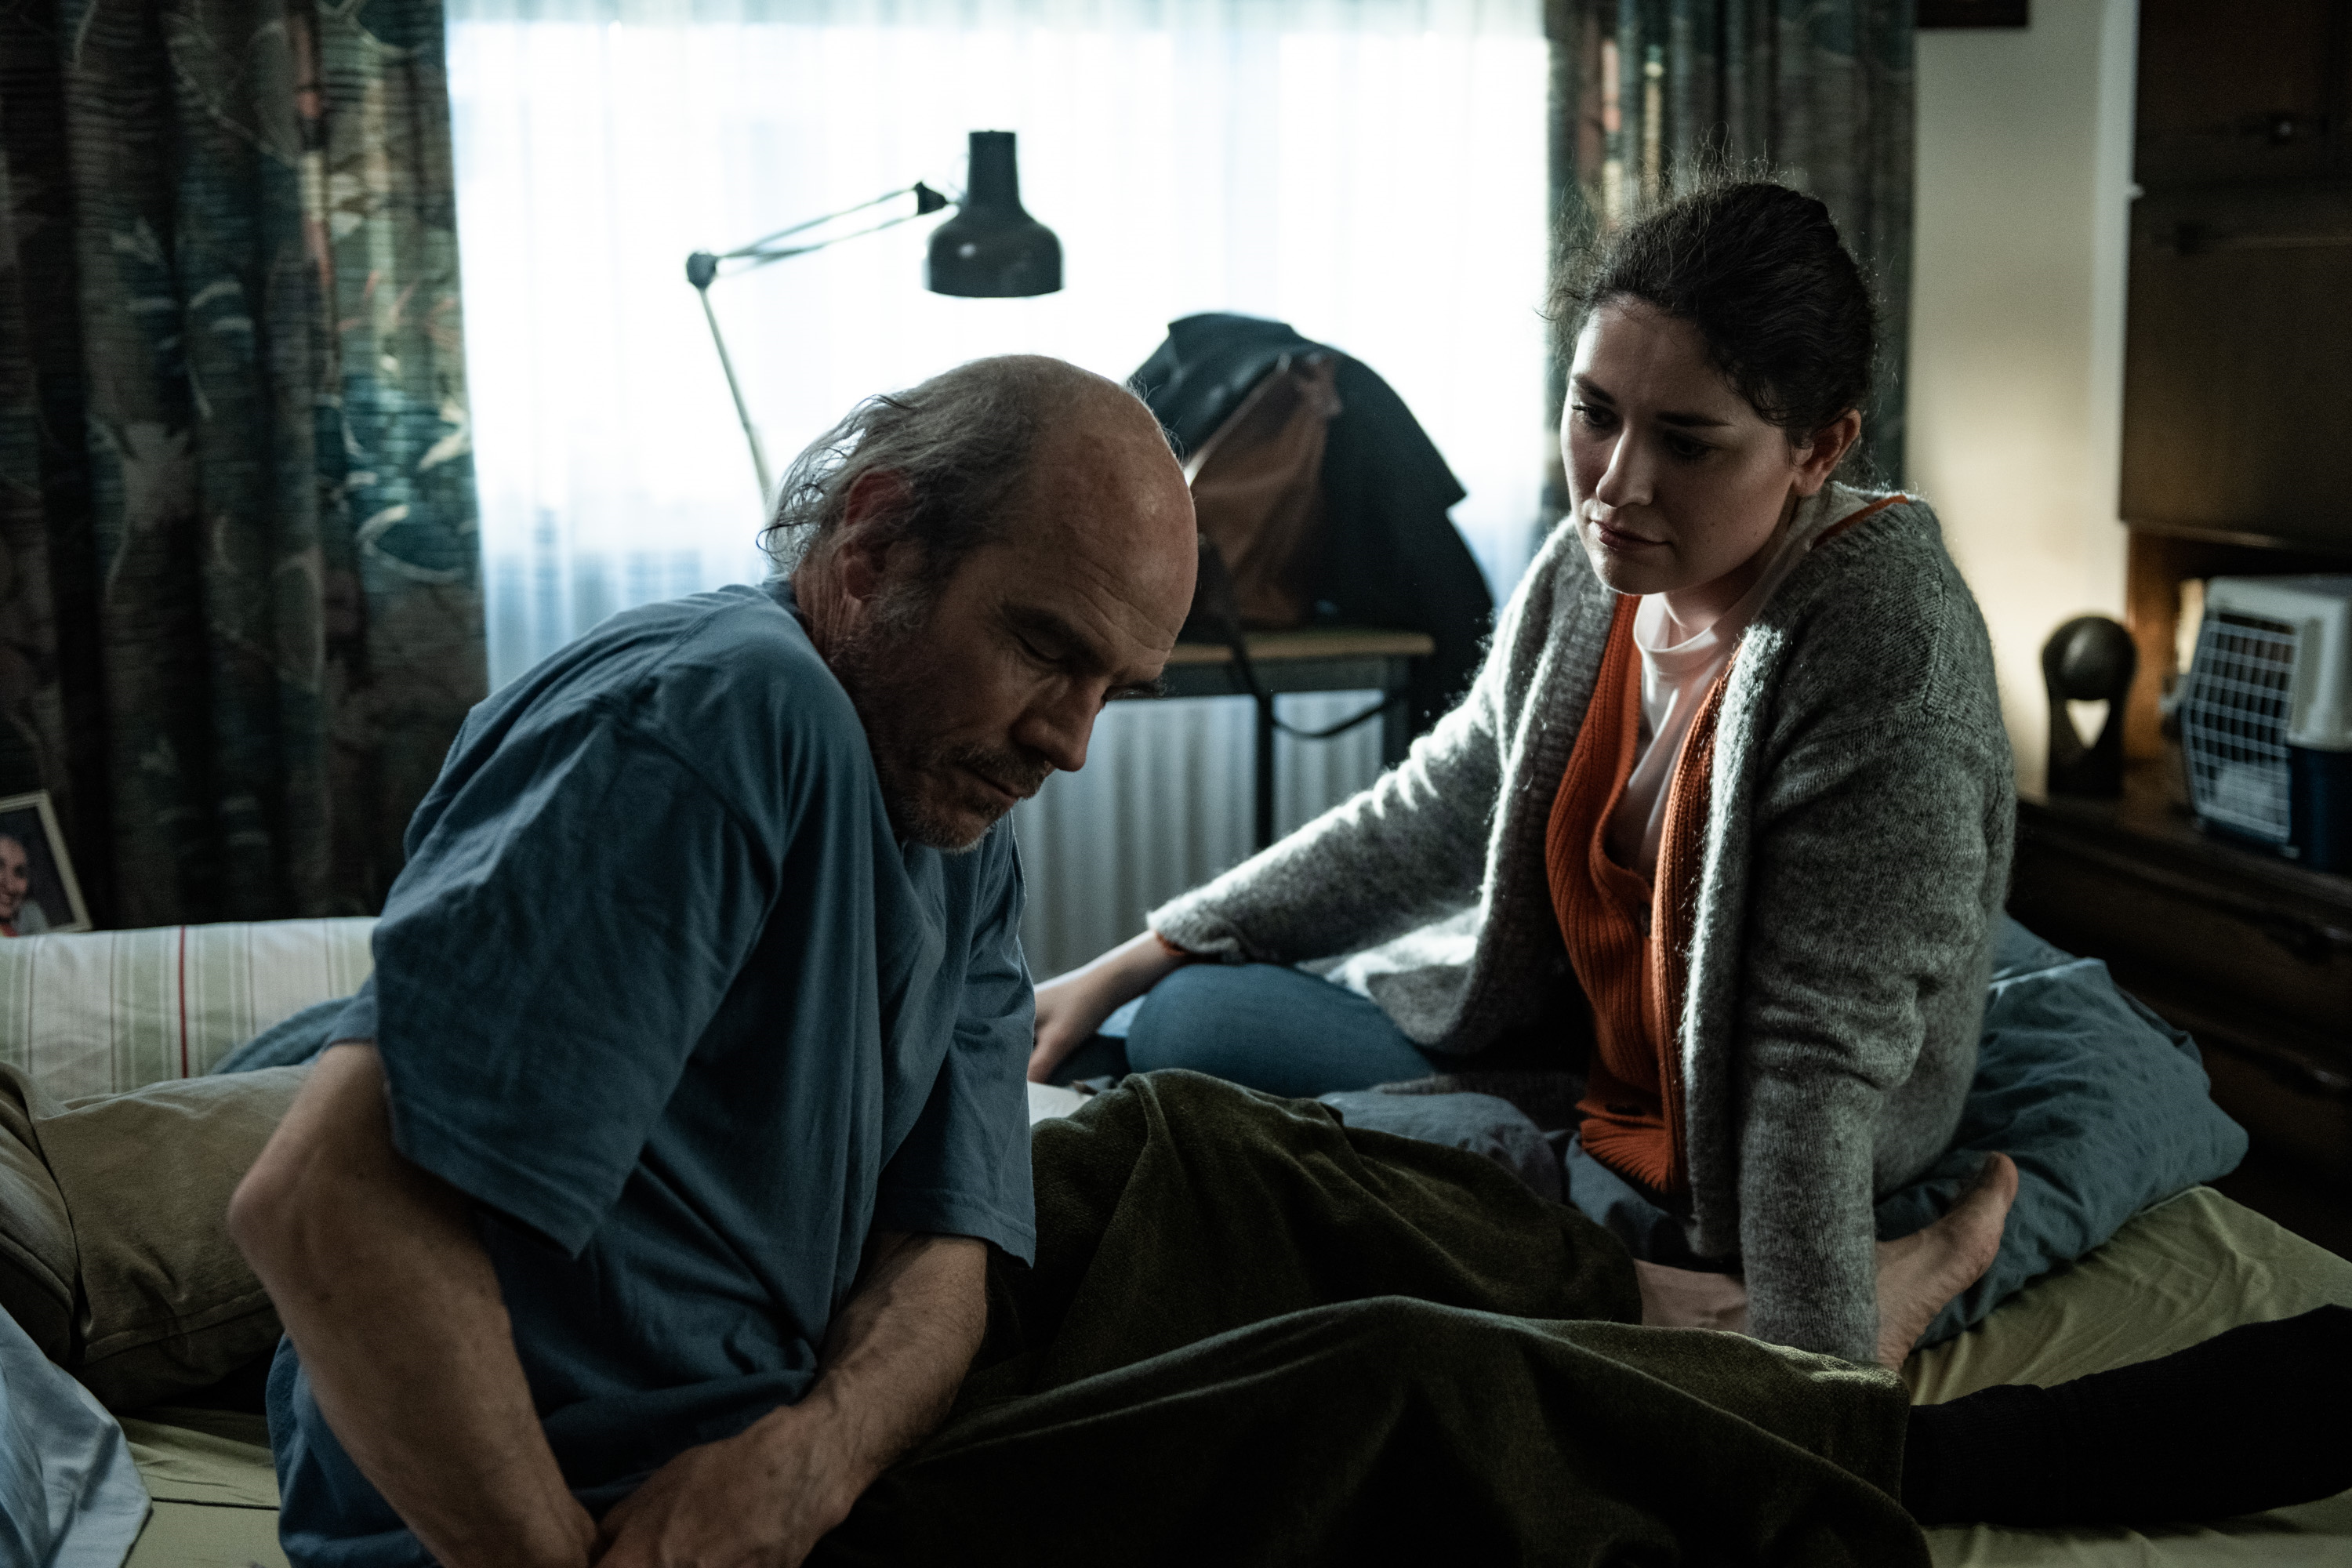 Manfred Liechti and Meret Bodamer in Eating the Silence (2021)